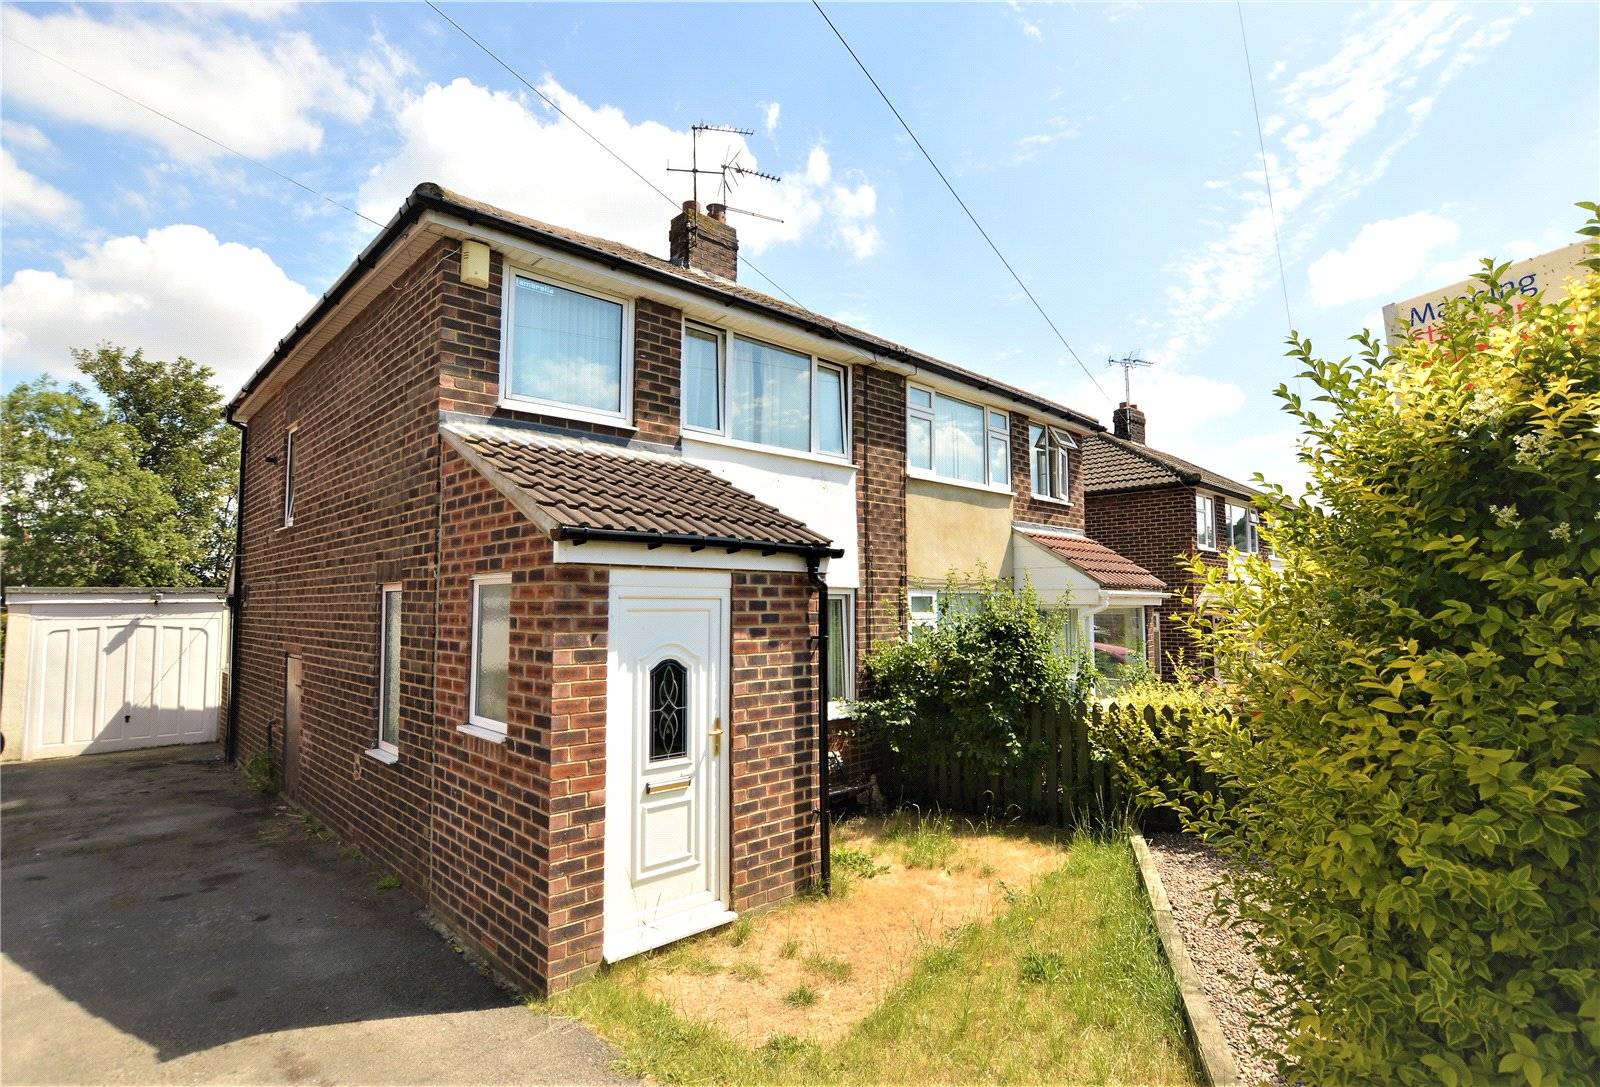 property for sale in wetherby, exterior semi detached home